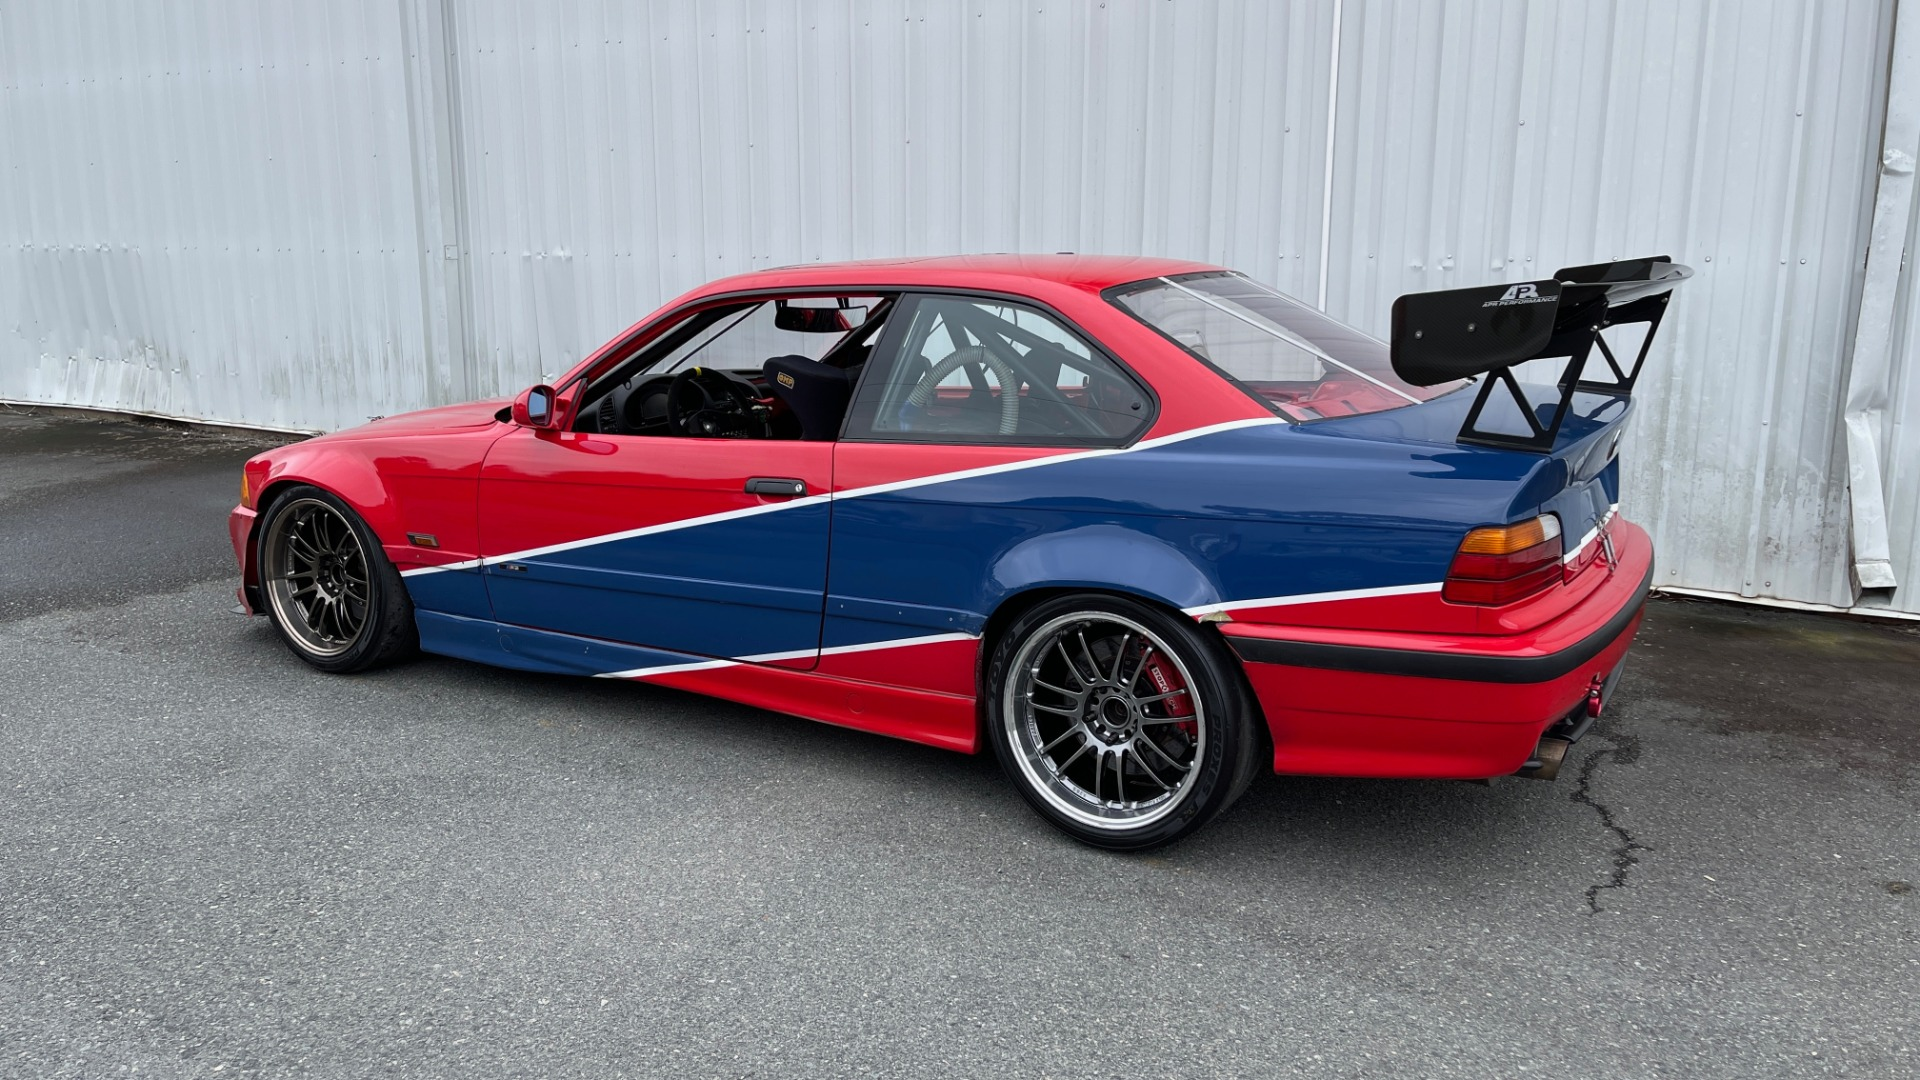 Used 1996 BMW 3-SERIES M3 TRACK CAR / 5-SPD / MANUAL / FULL CAGE / CARBON FIBER WING for sale $47,995 at Formula Imports in Charlotte NC 28227 15